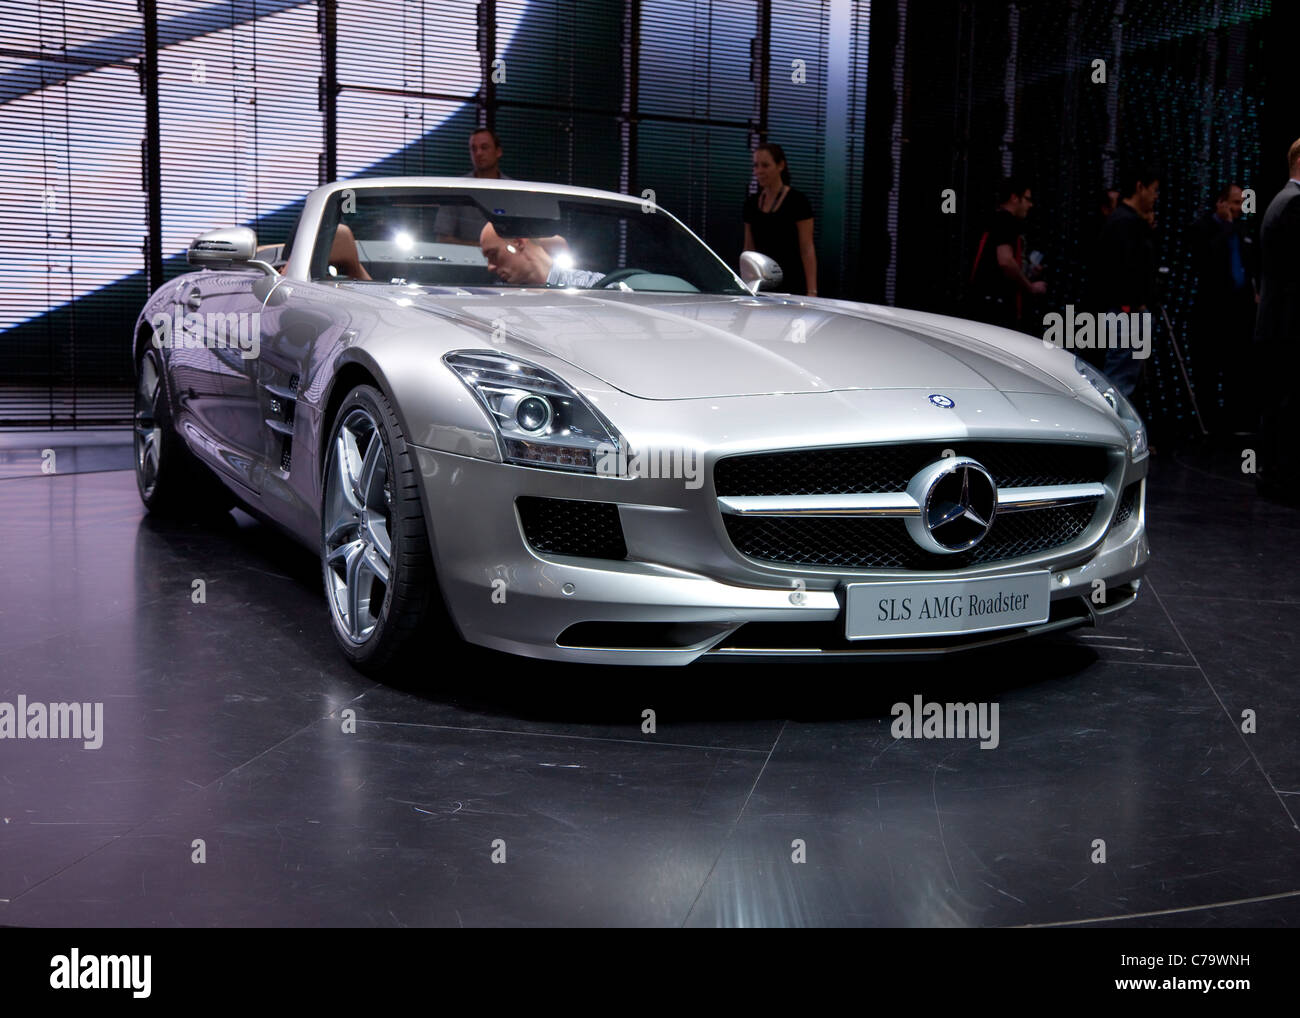 Mercedes Stock Photos Images Alamy Benz 230ce Fuel Filter New Roadster Sls Amg On The Iaa 2011 International Motor Show In Frankfurt Am